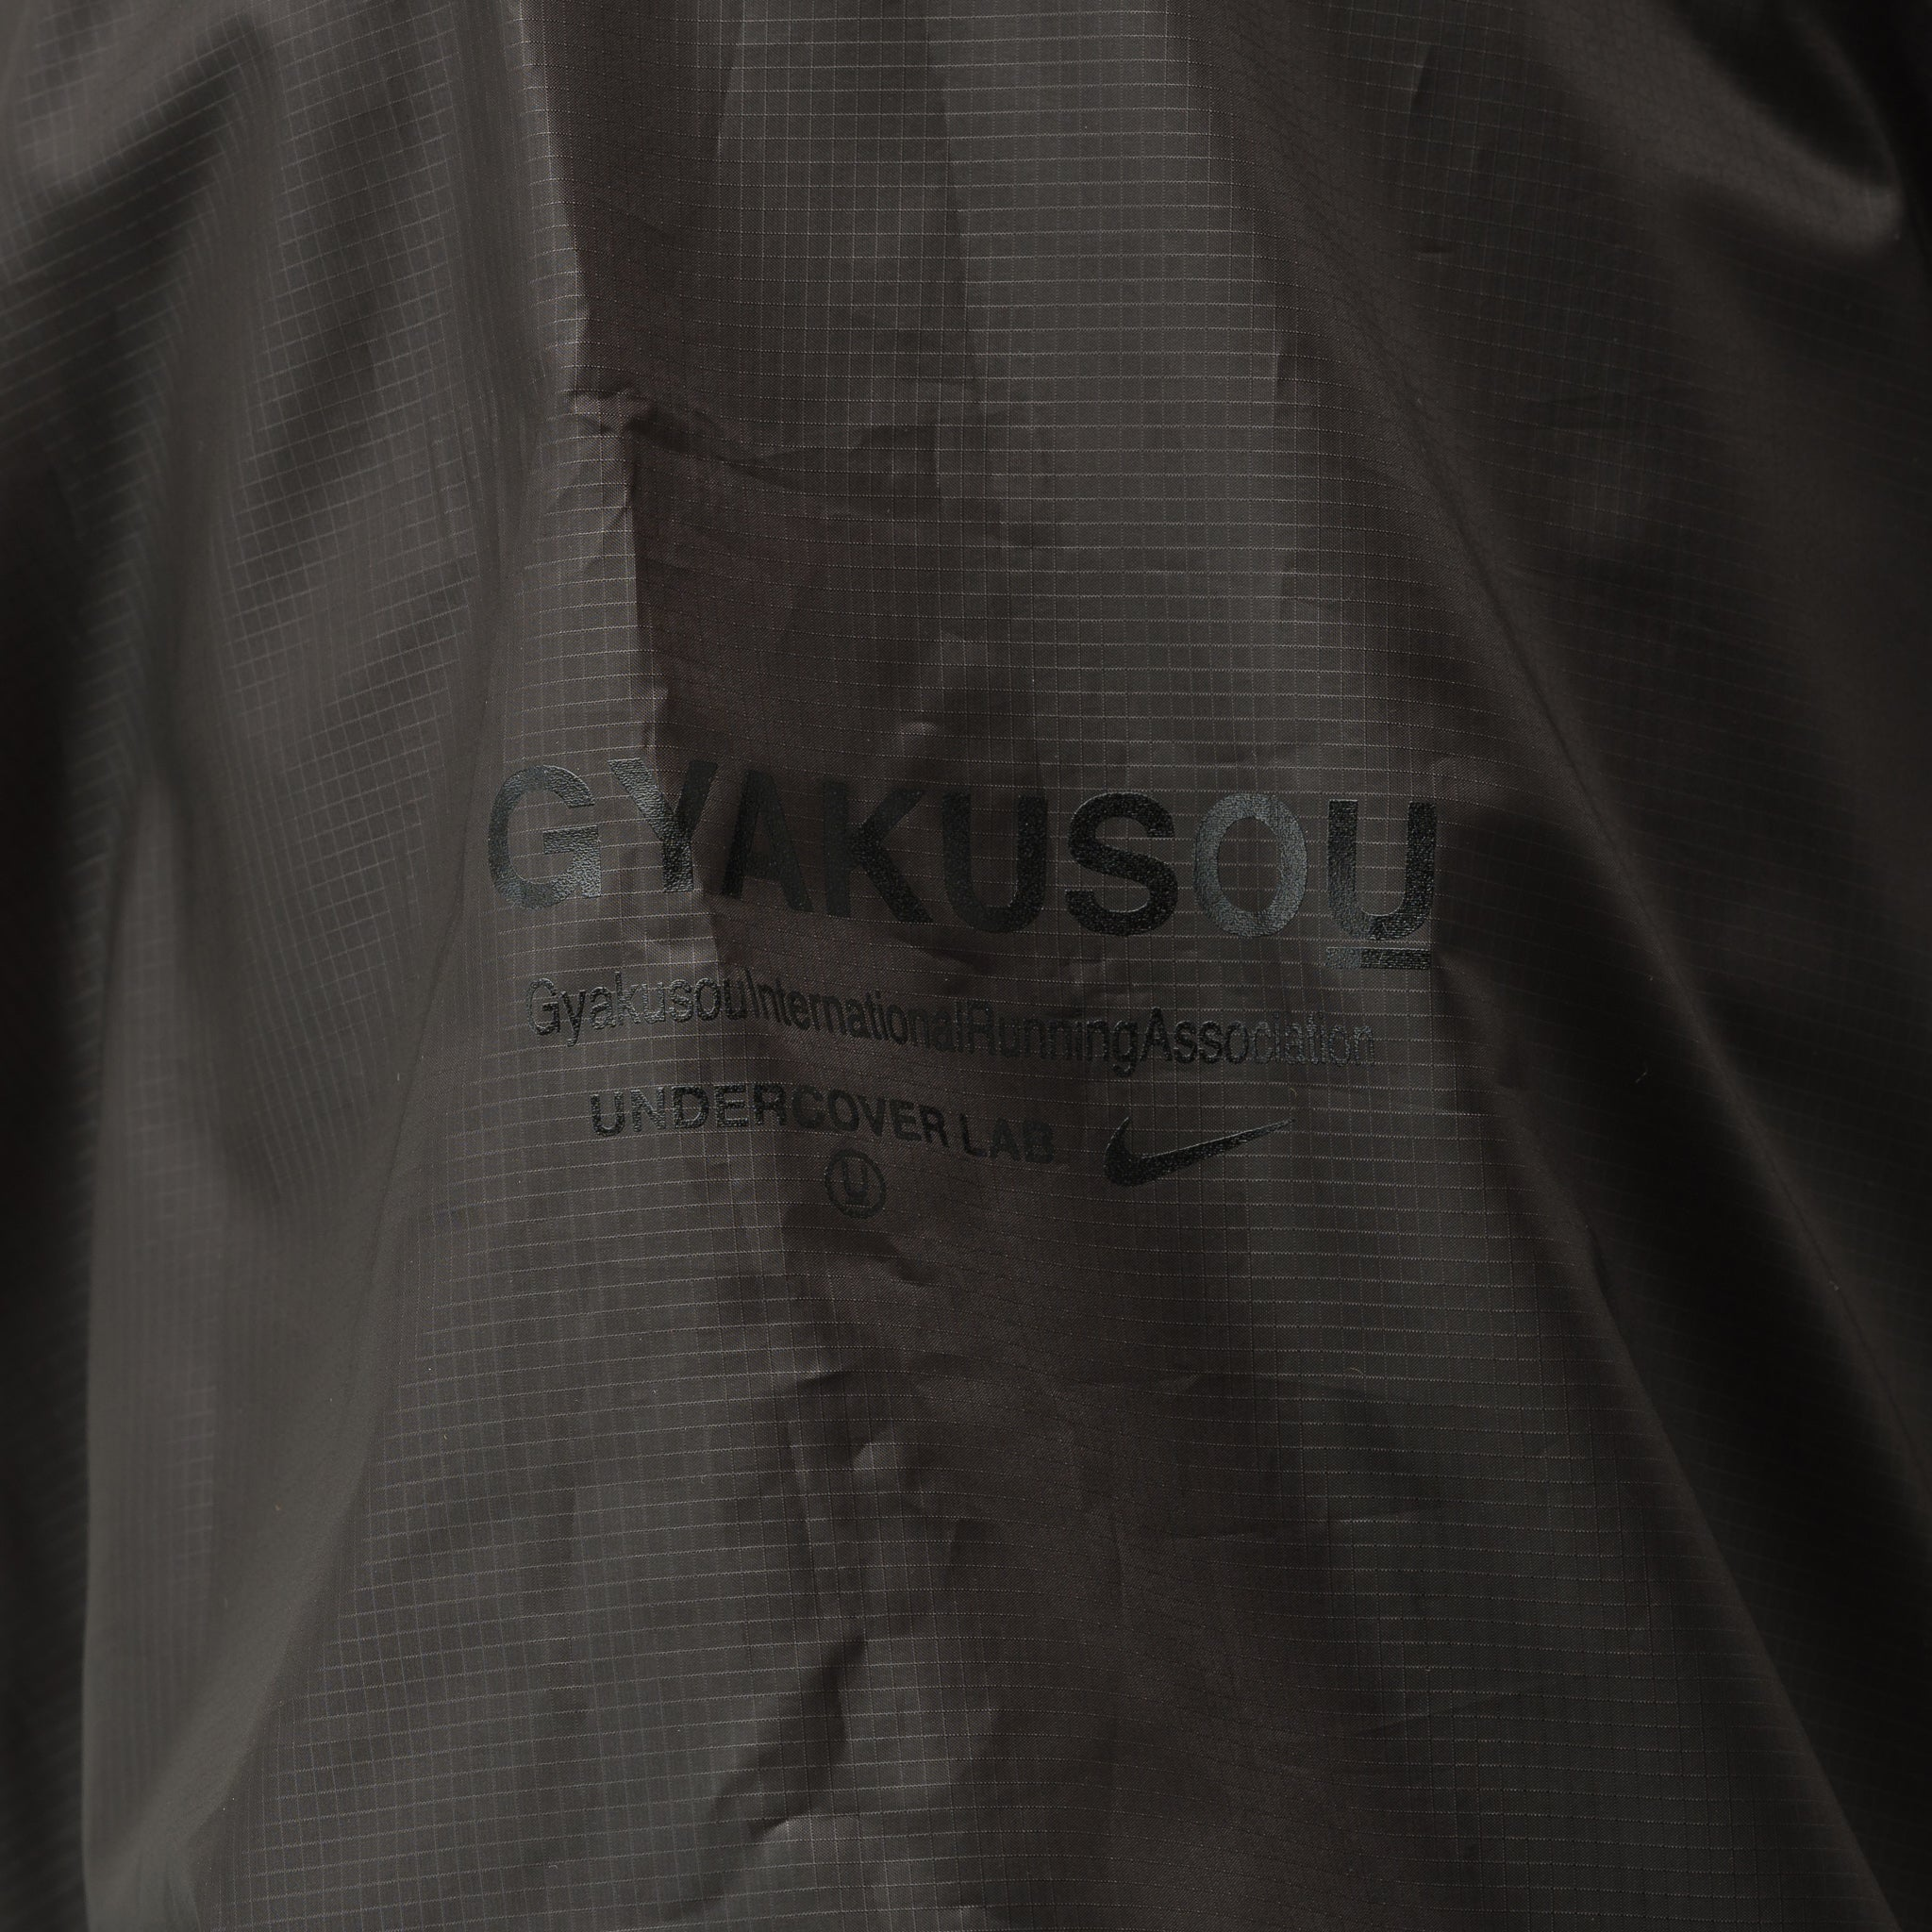 Gyakusou Transform Jacket in Midnight Fog